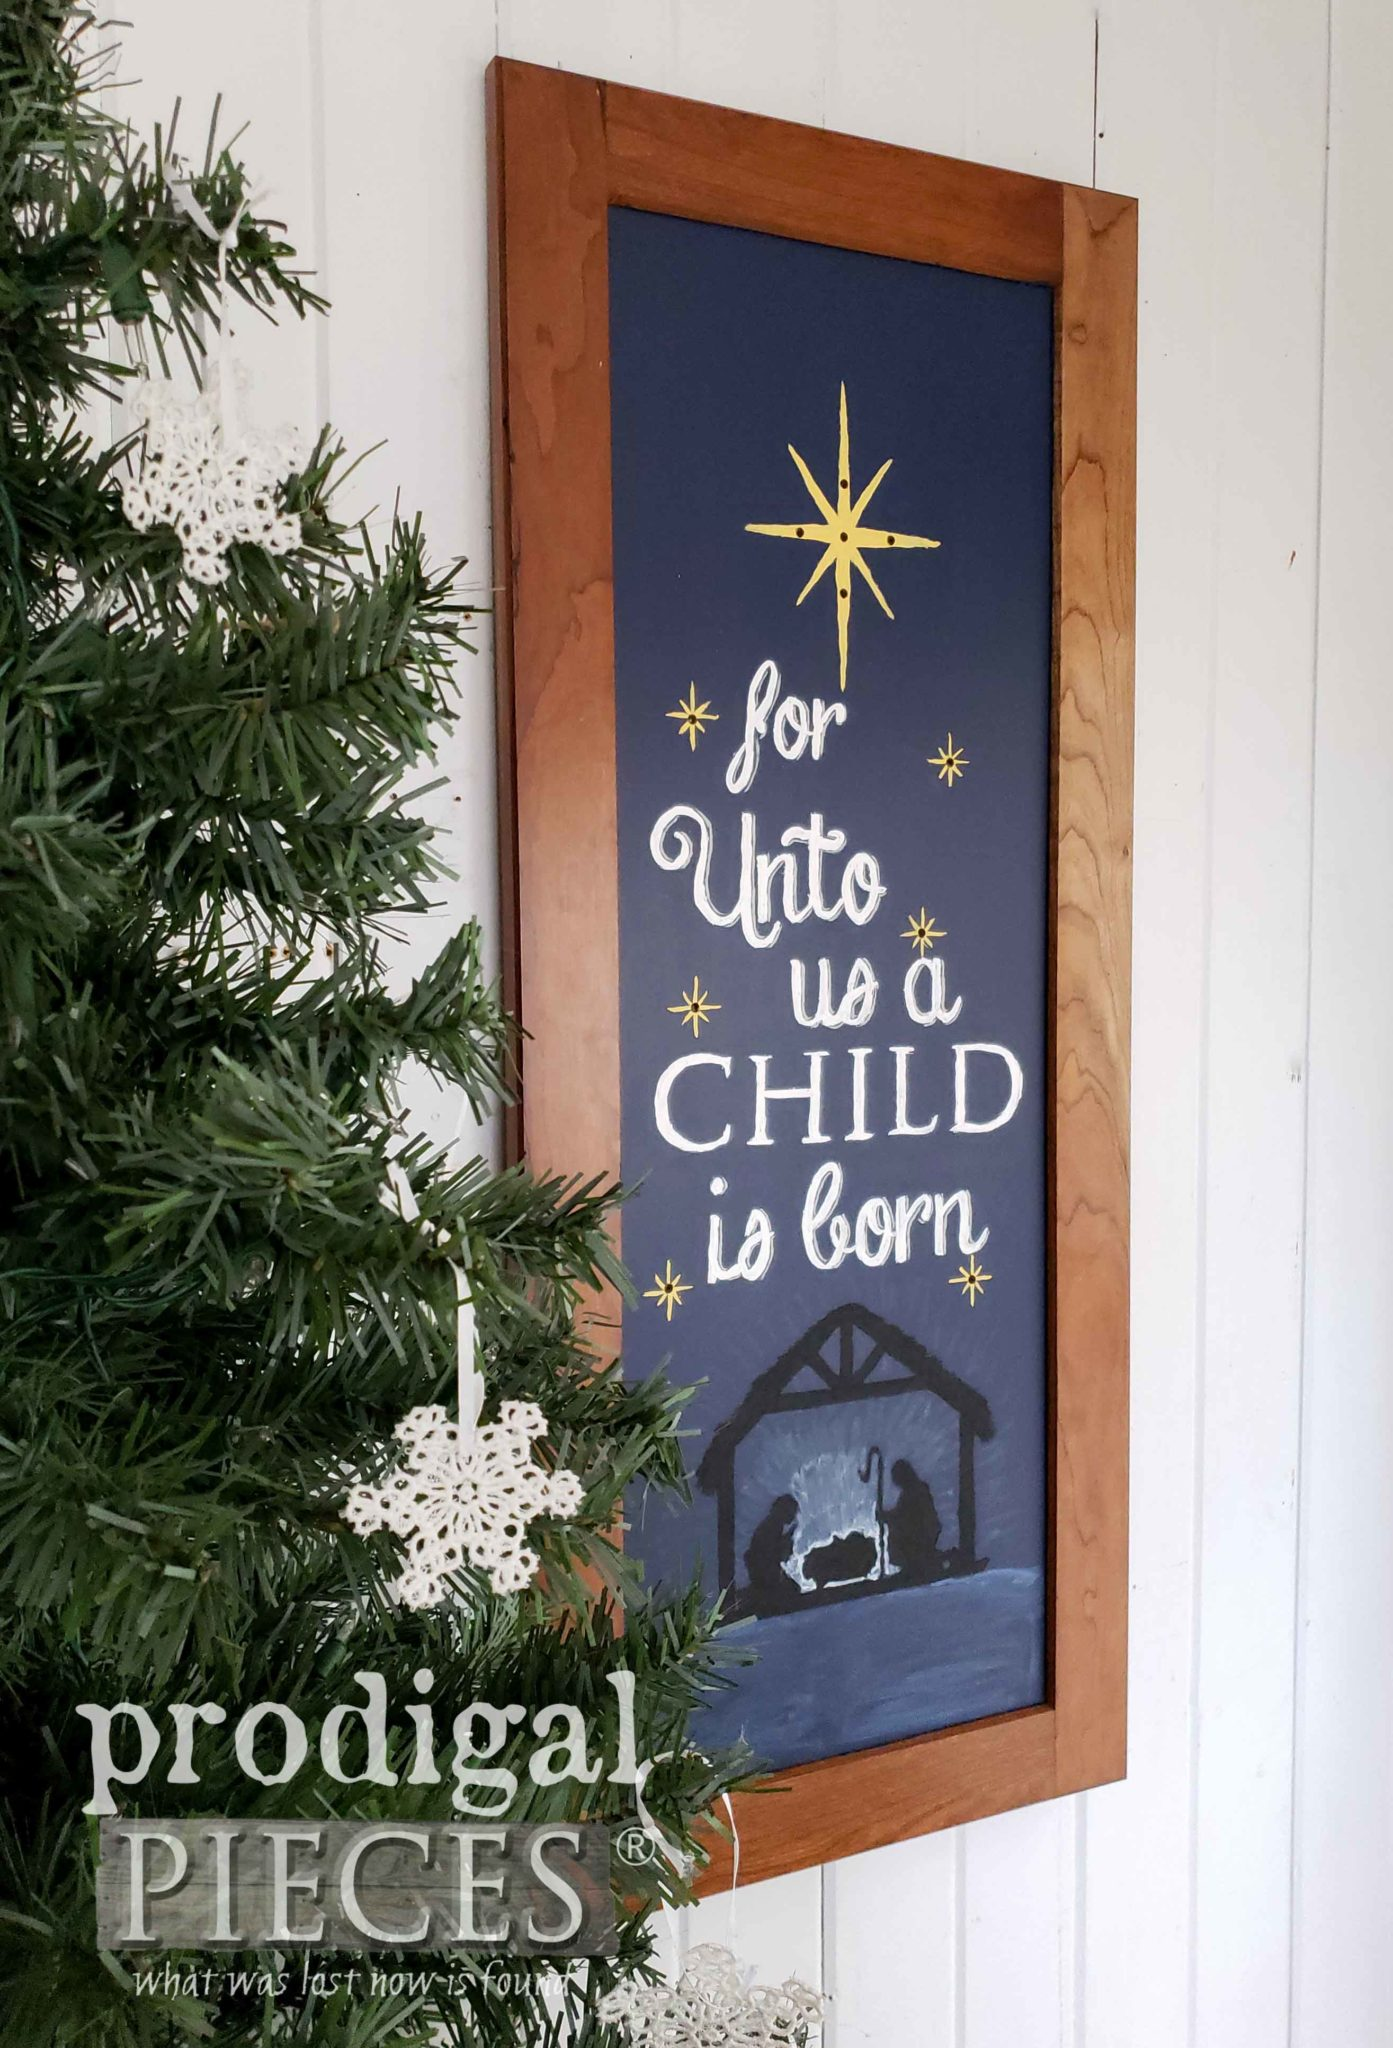 For Unto Us a Child is Born | Wall Art Tutorial by Prodigal Pieces Kids Create | prodigalpieces.com